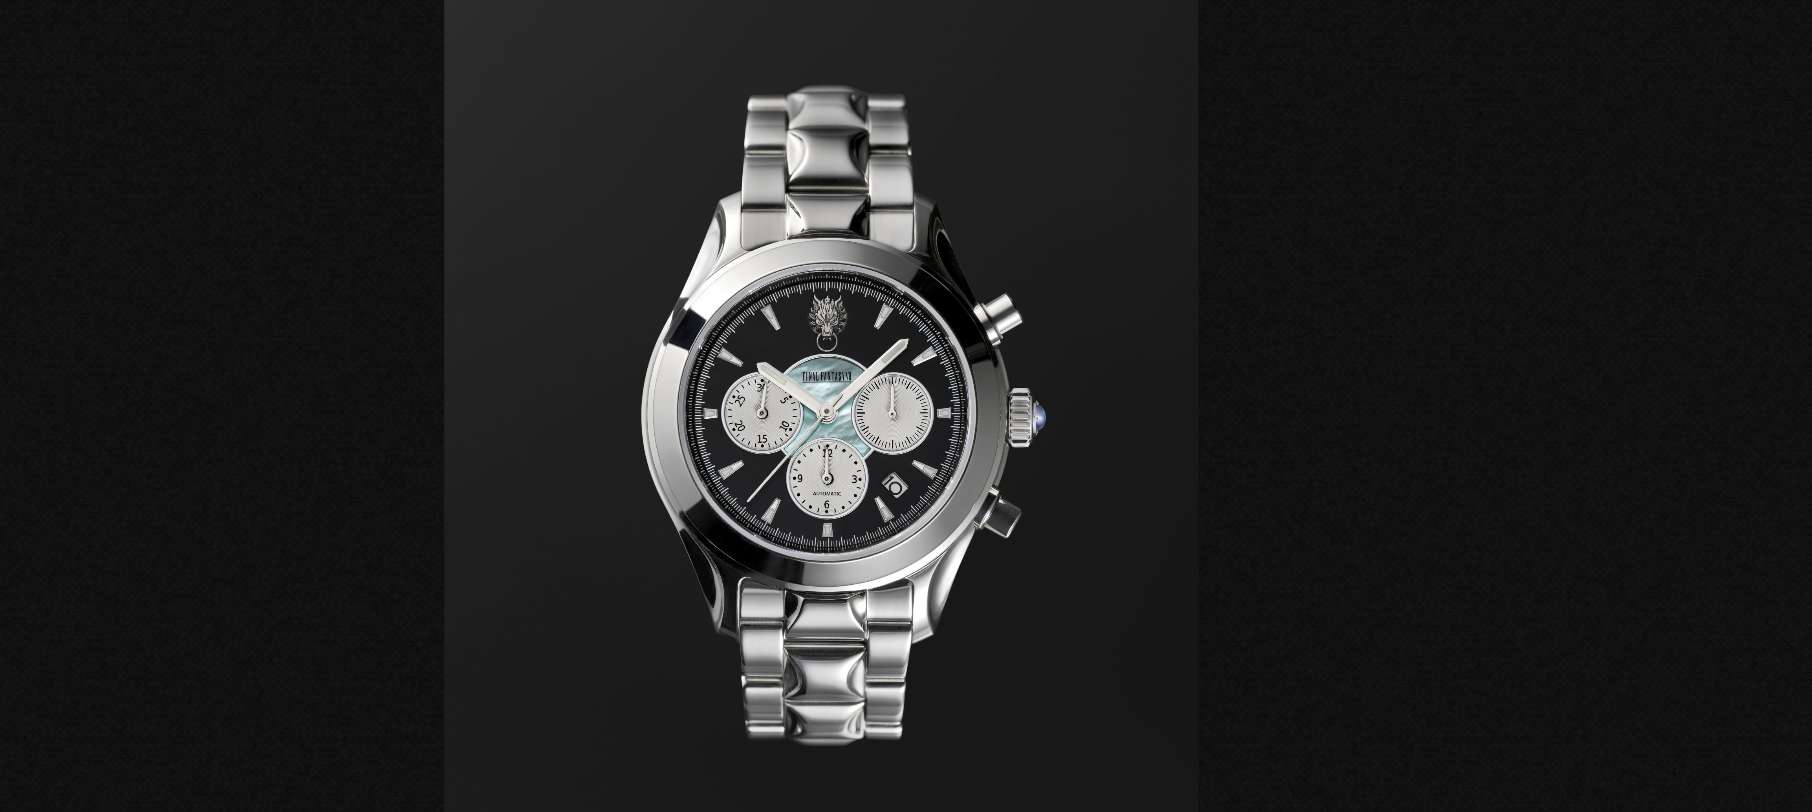 Limited Edition Final Fantasy VII Remake Themed Wristwatch Will Cost Up To $2,500 To Own